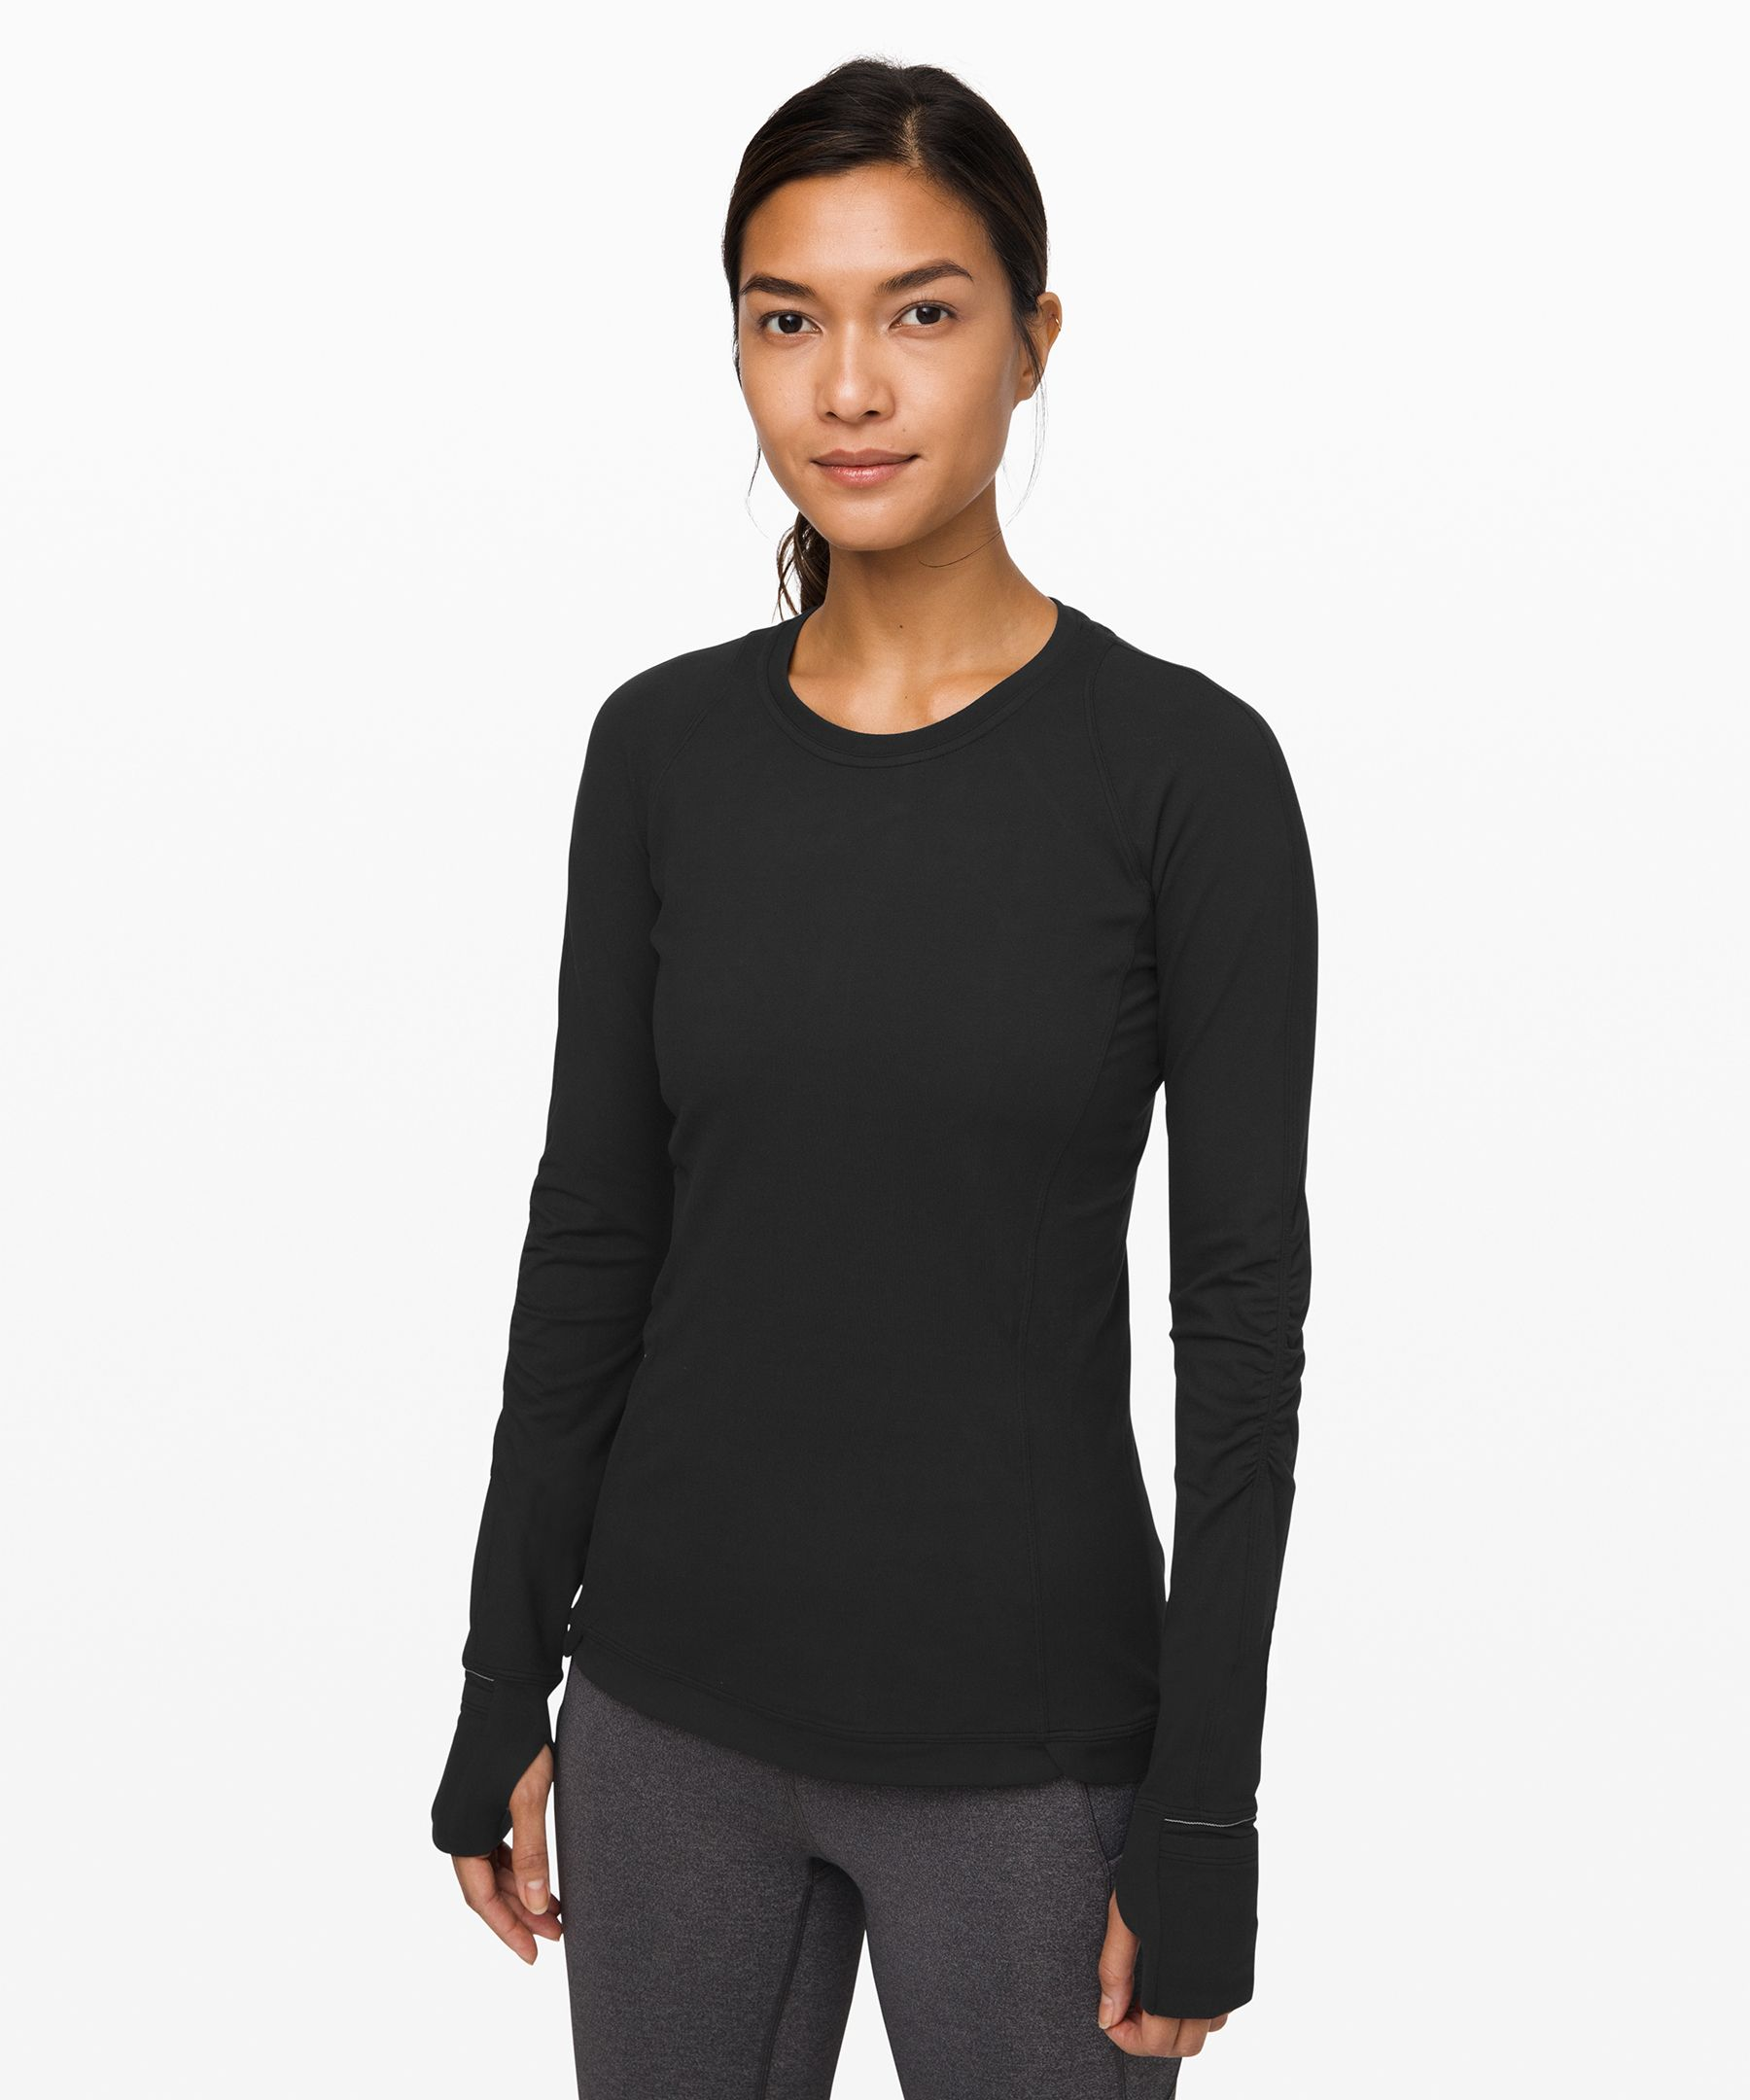 We designed this soft, warm  long sleeve to be your  cold-weather-running  companion. The slim fit layers  easily under jackets, and  wicks sweat away from the skin.